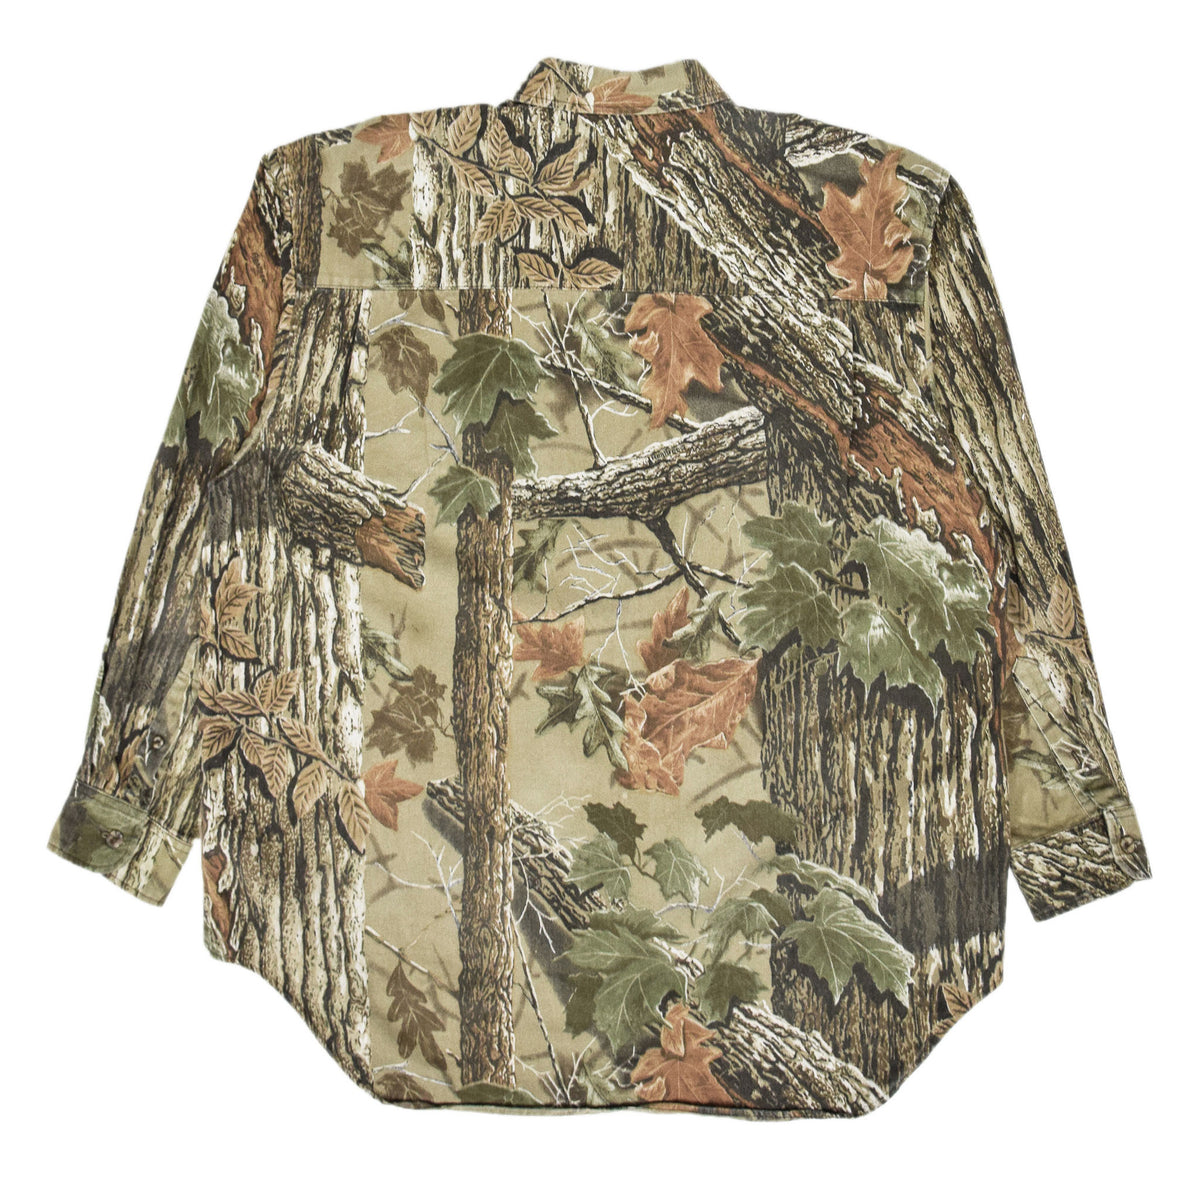 Vintage Duxbak Tree Leaf Camo Hunting Shooting Cotton Long Sleeve Shirt XL back